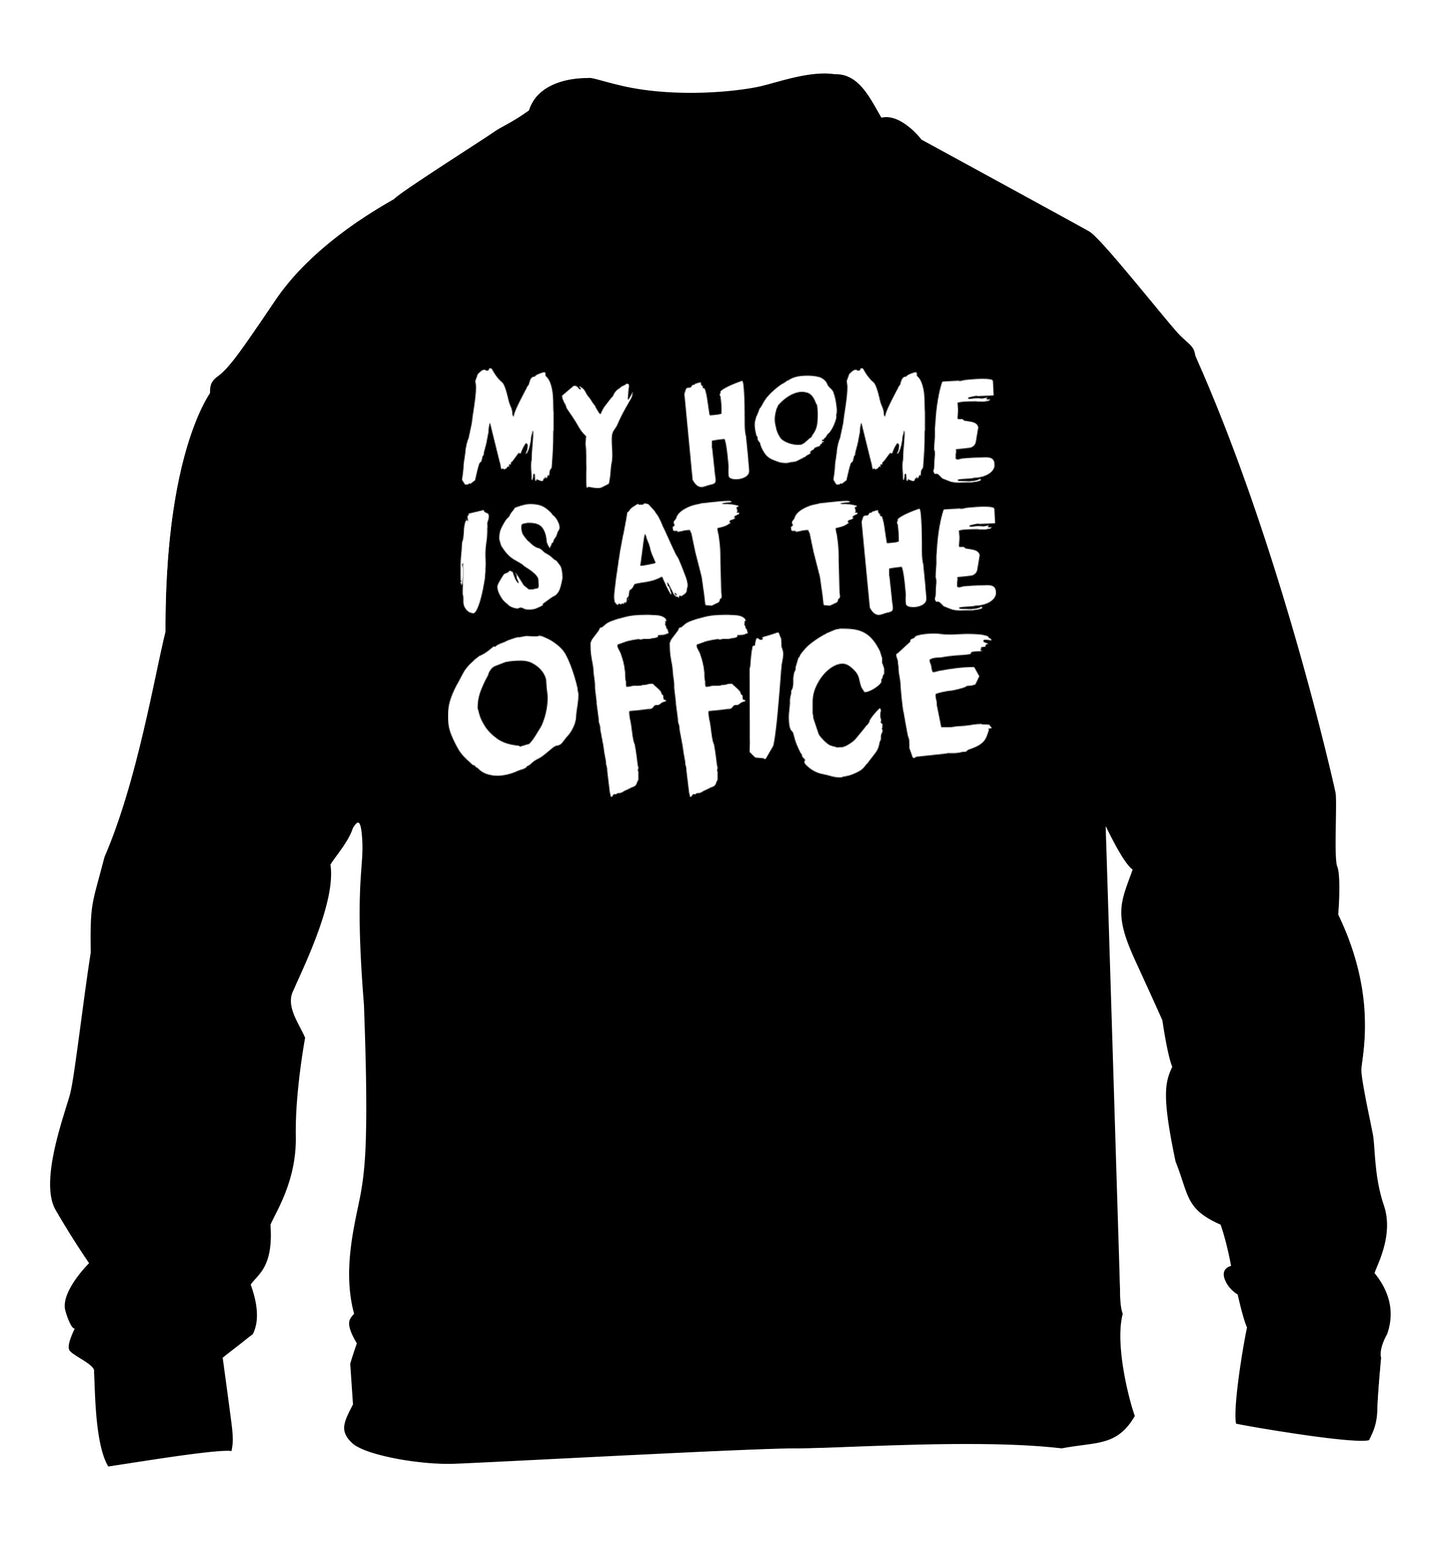 My home is at the office children's black sweater 12-14 Years